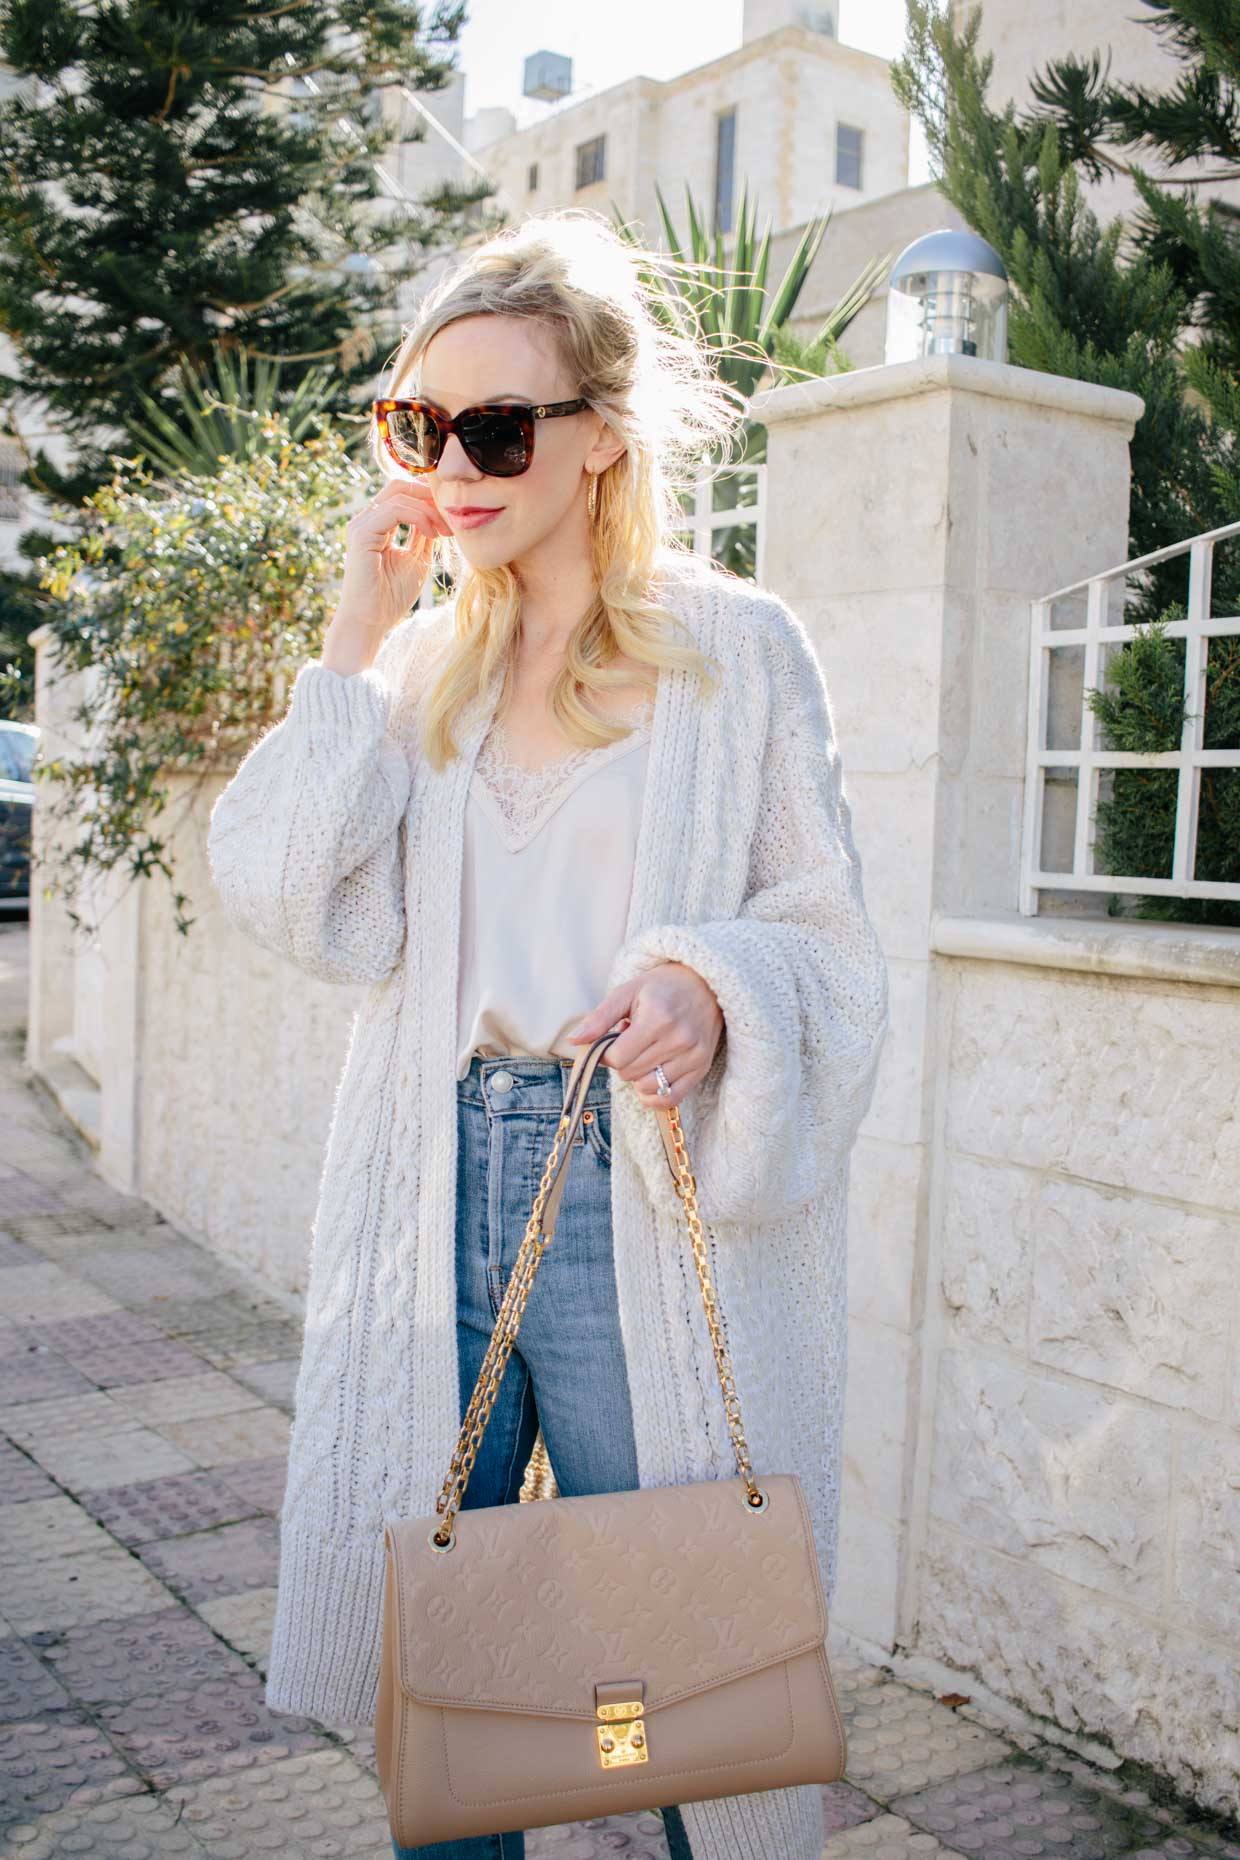 48a8f6f7569b2f Meagan Brandon fashion blogger of Meagan s Moda shows how to wear an  oversized cardigan with lace camisole for chic spring outfit idea